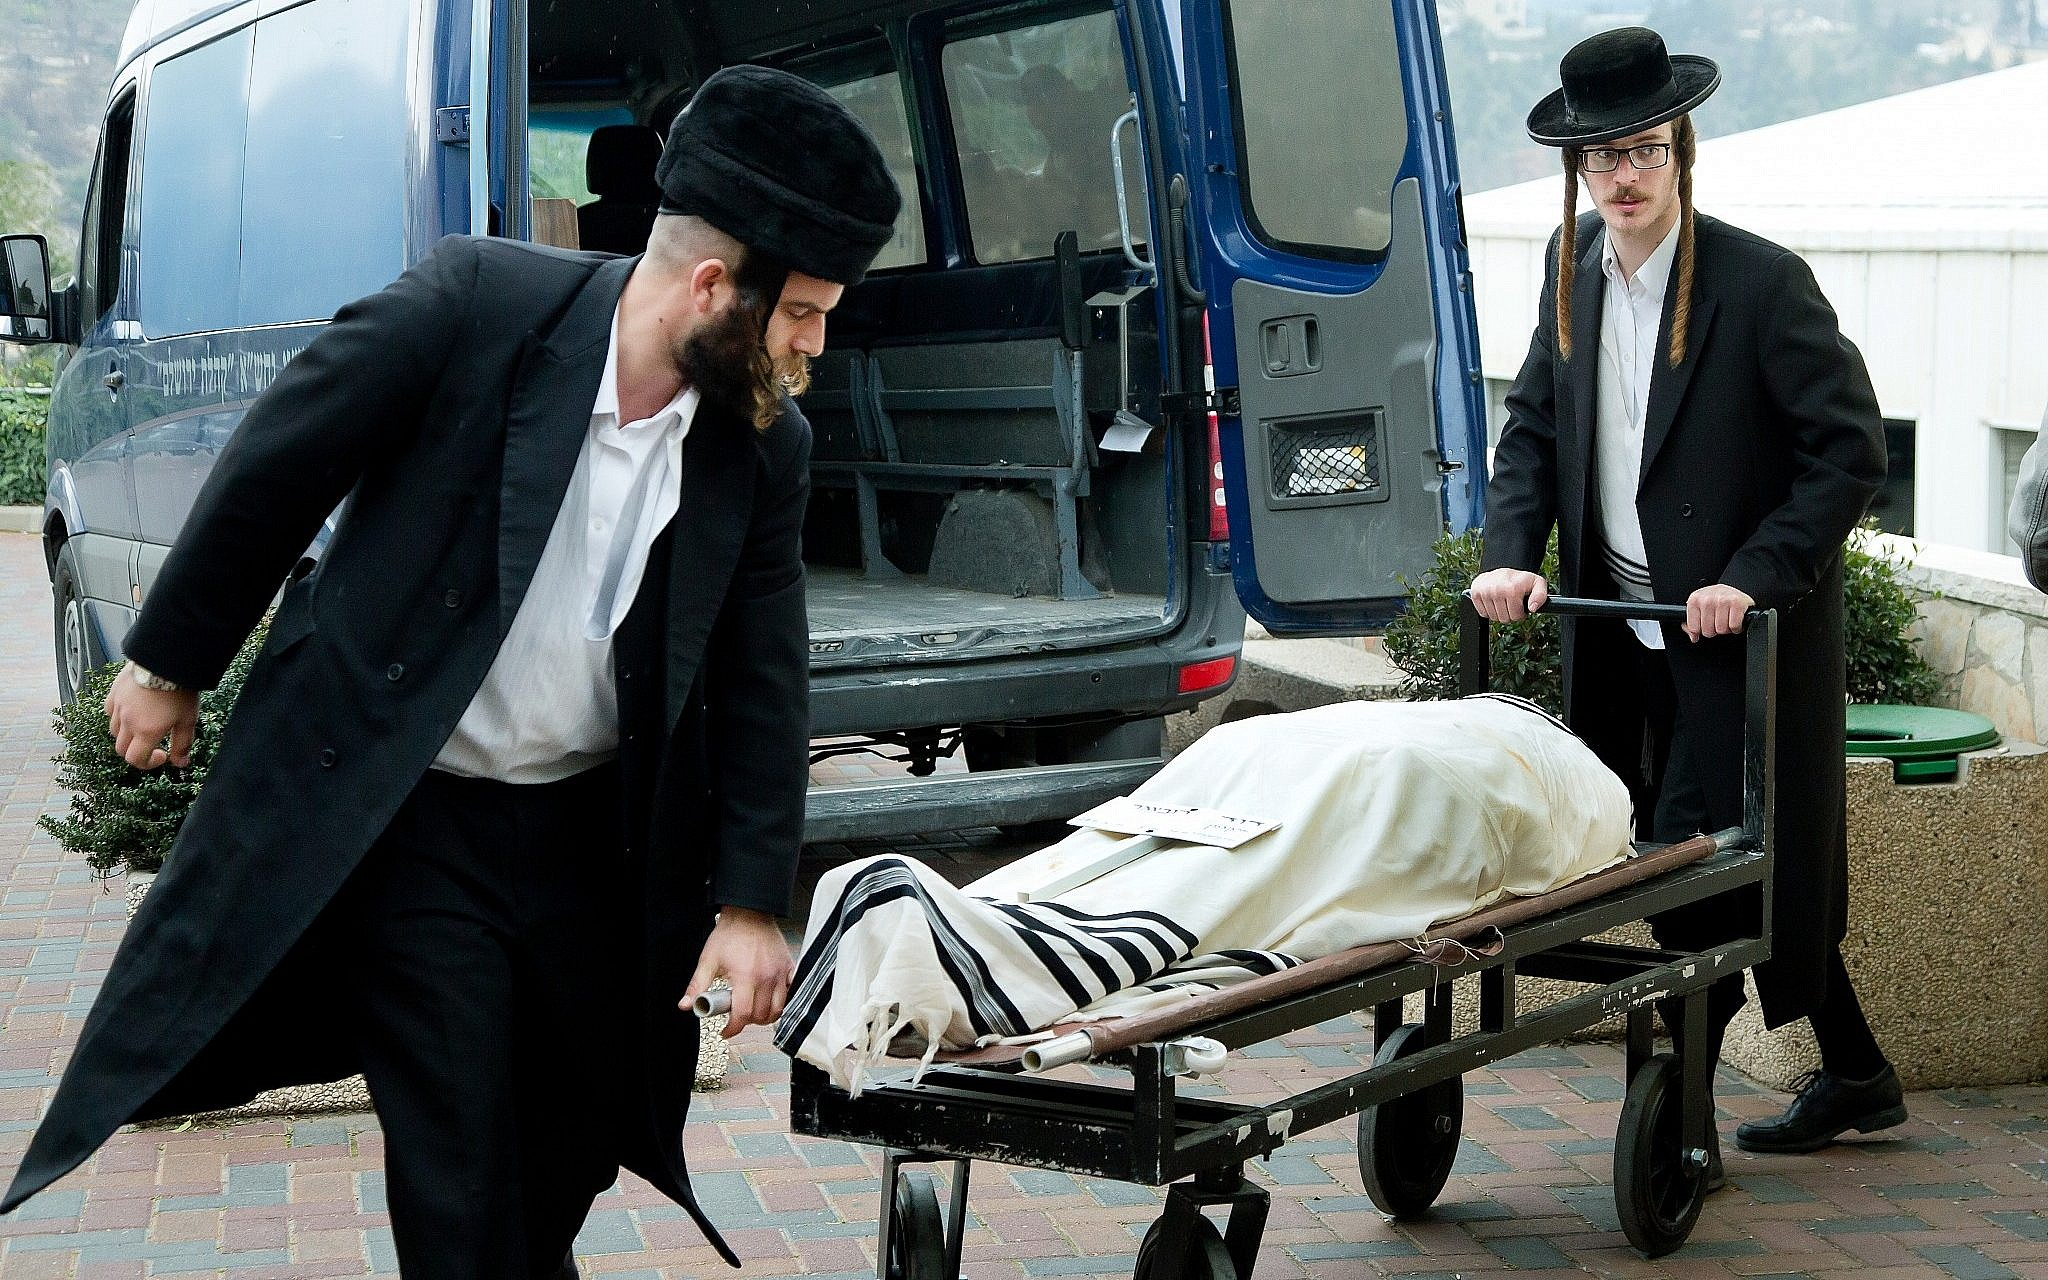 UK High Court orders London coroner to prioritize Jewish